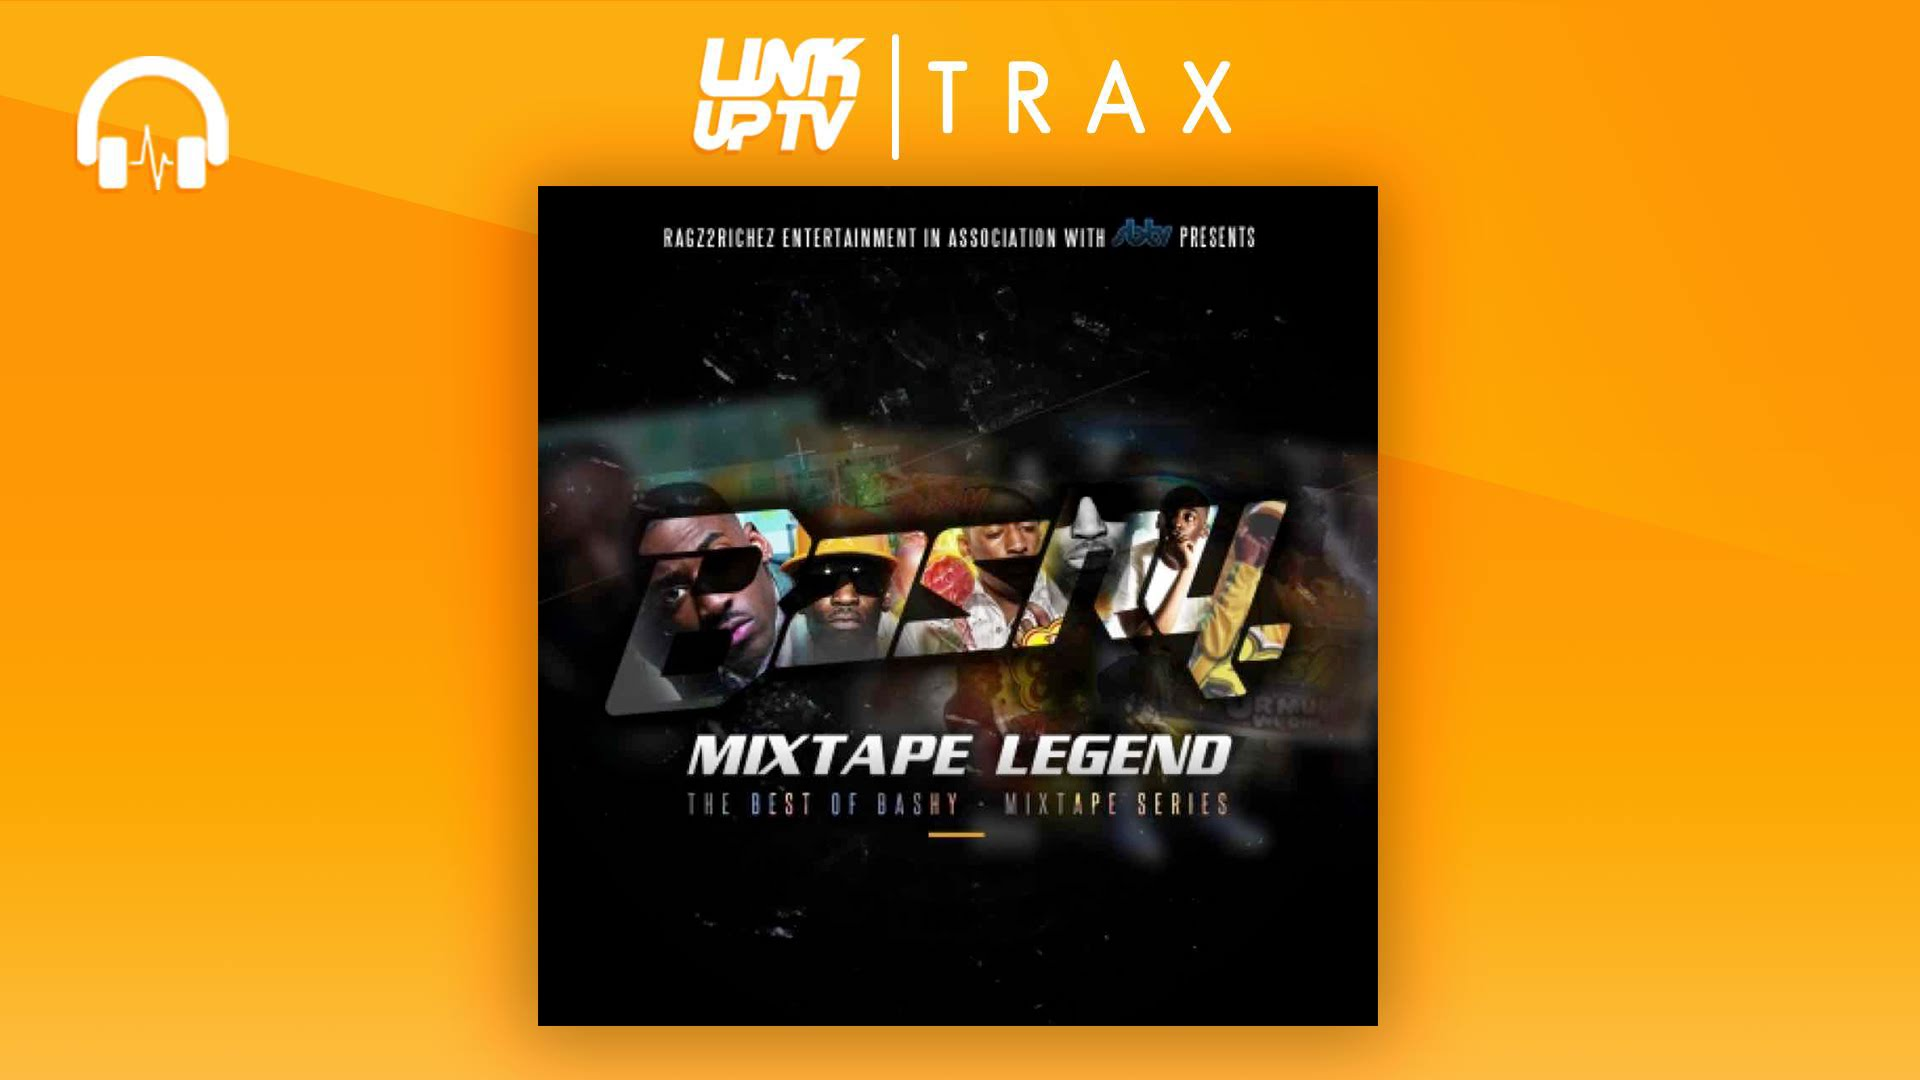 Legend Mixtapes